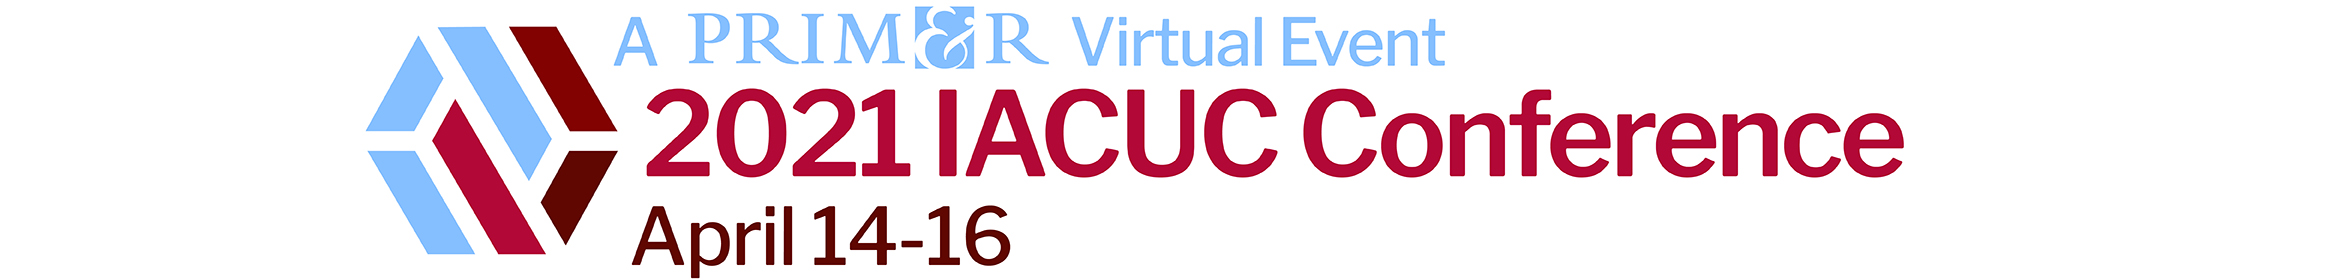 2021 IACUC Virtual Conference Main banner